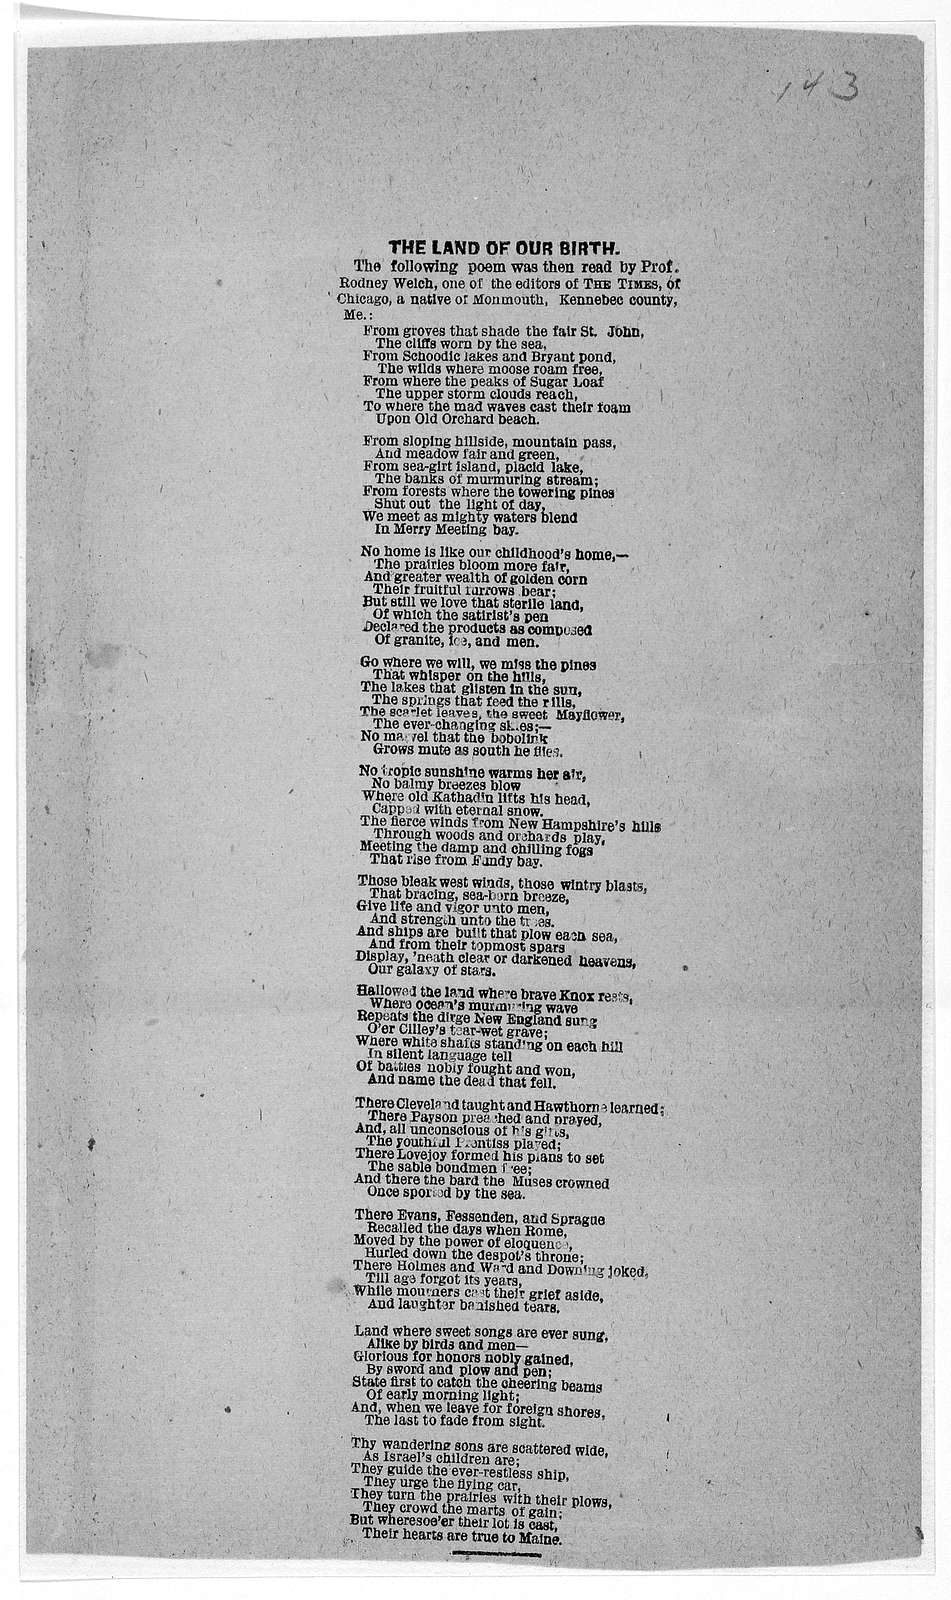 The land of our birth. The following poem was then read by Prof. Rodney Welch one of the editors of The Times, of Chicago, a native of Monmouth, Kennebec county, Me. [Chicago? Ill.].